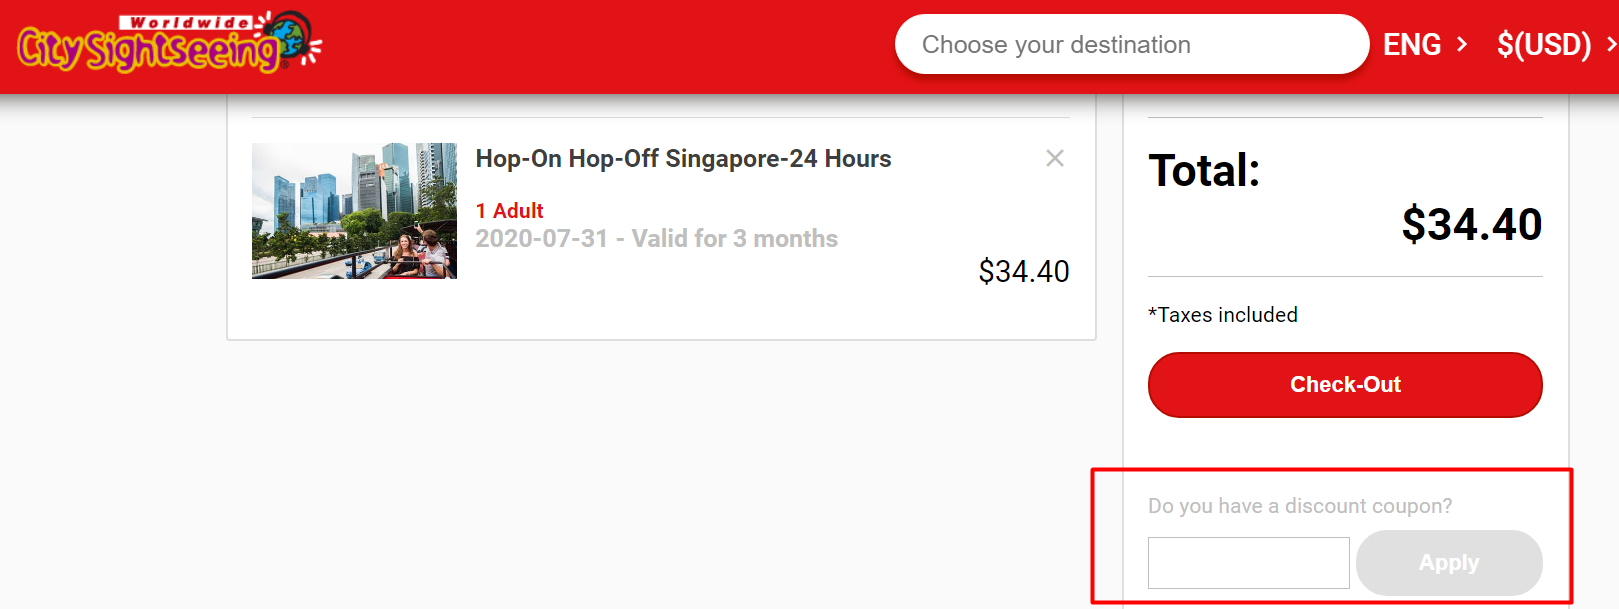 How do I use my City Sightseeing discount code?